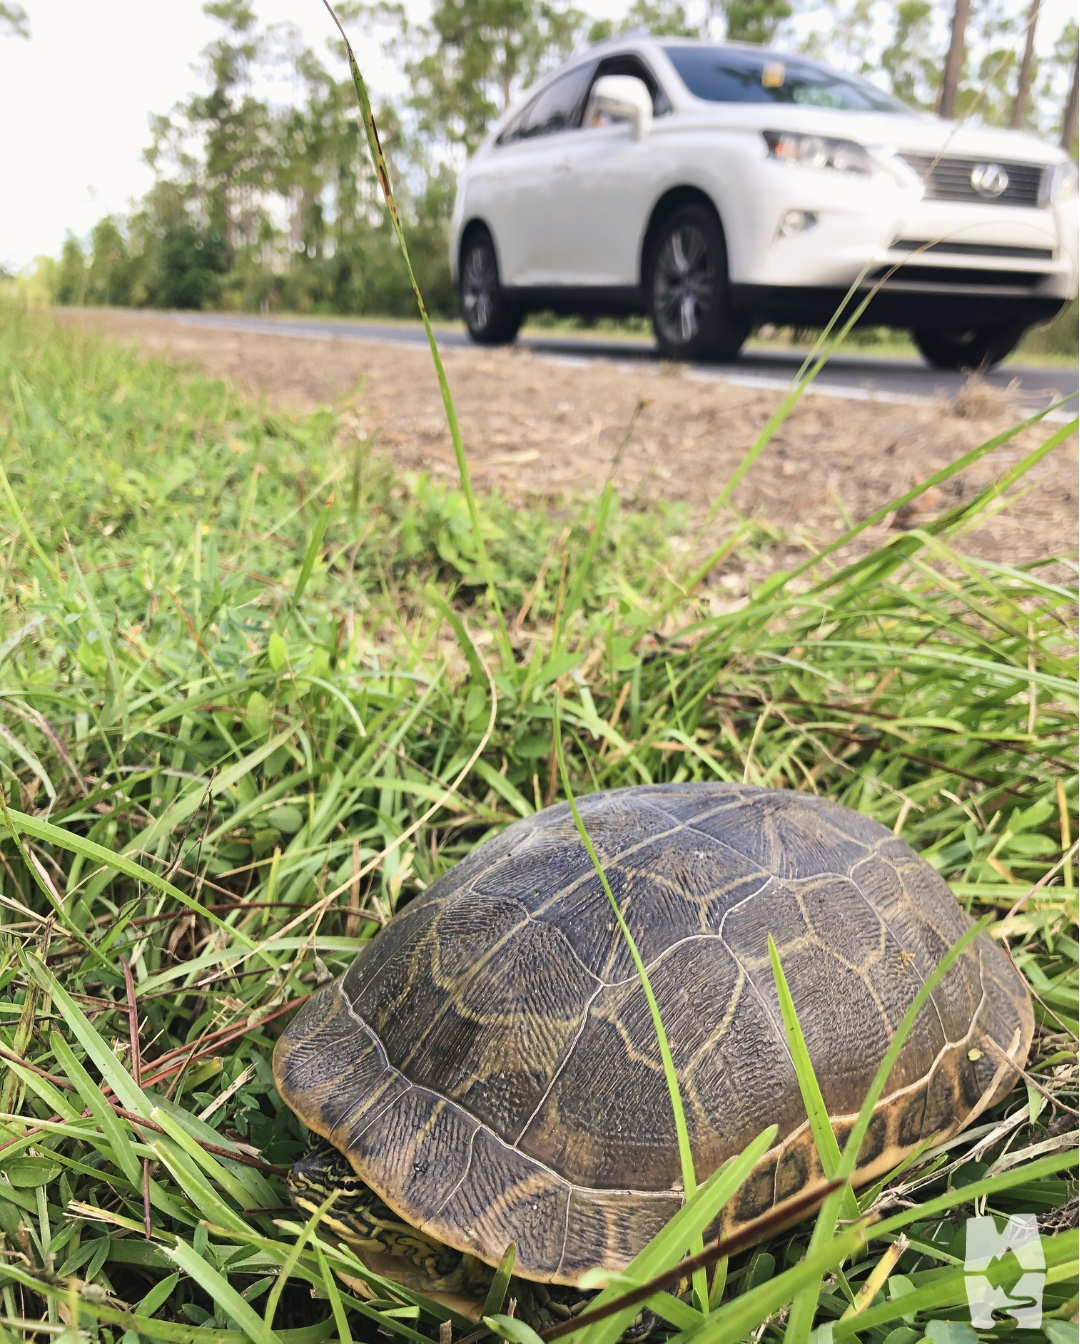 helping a turtle cross the road